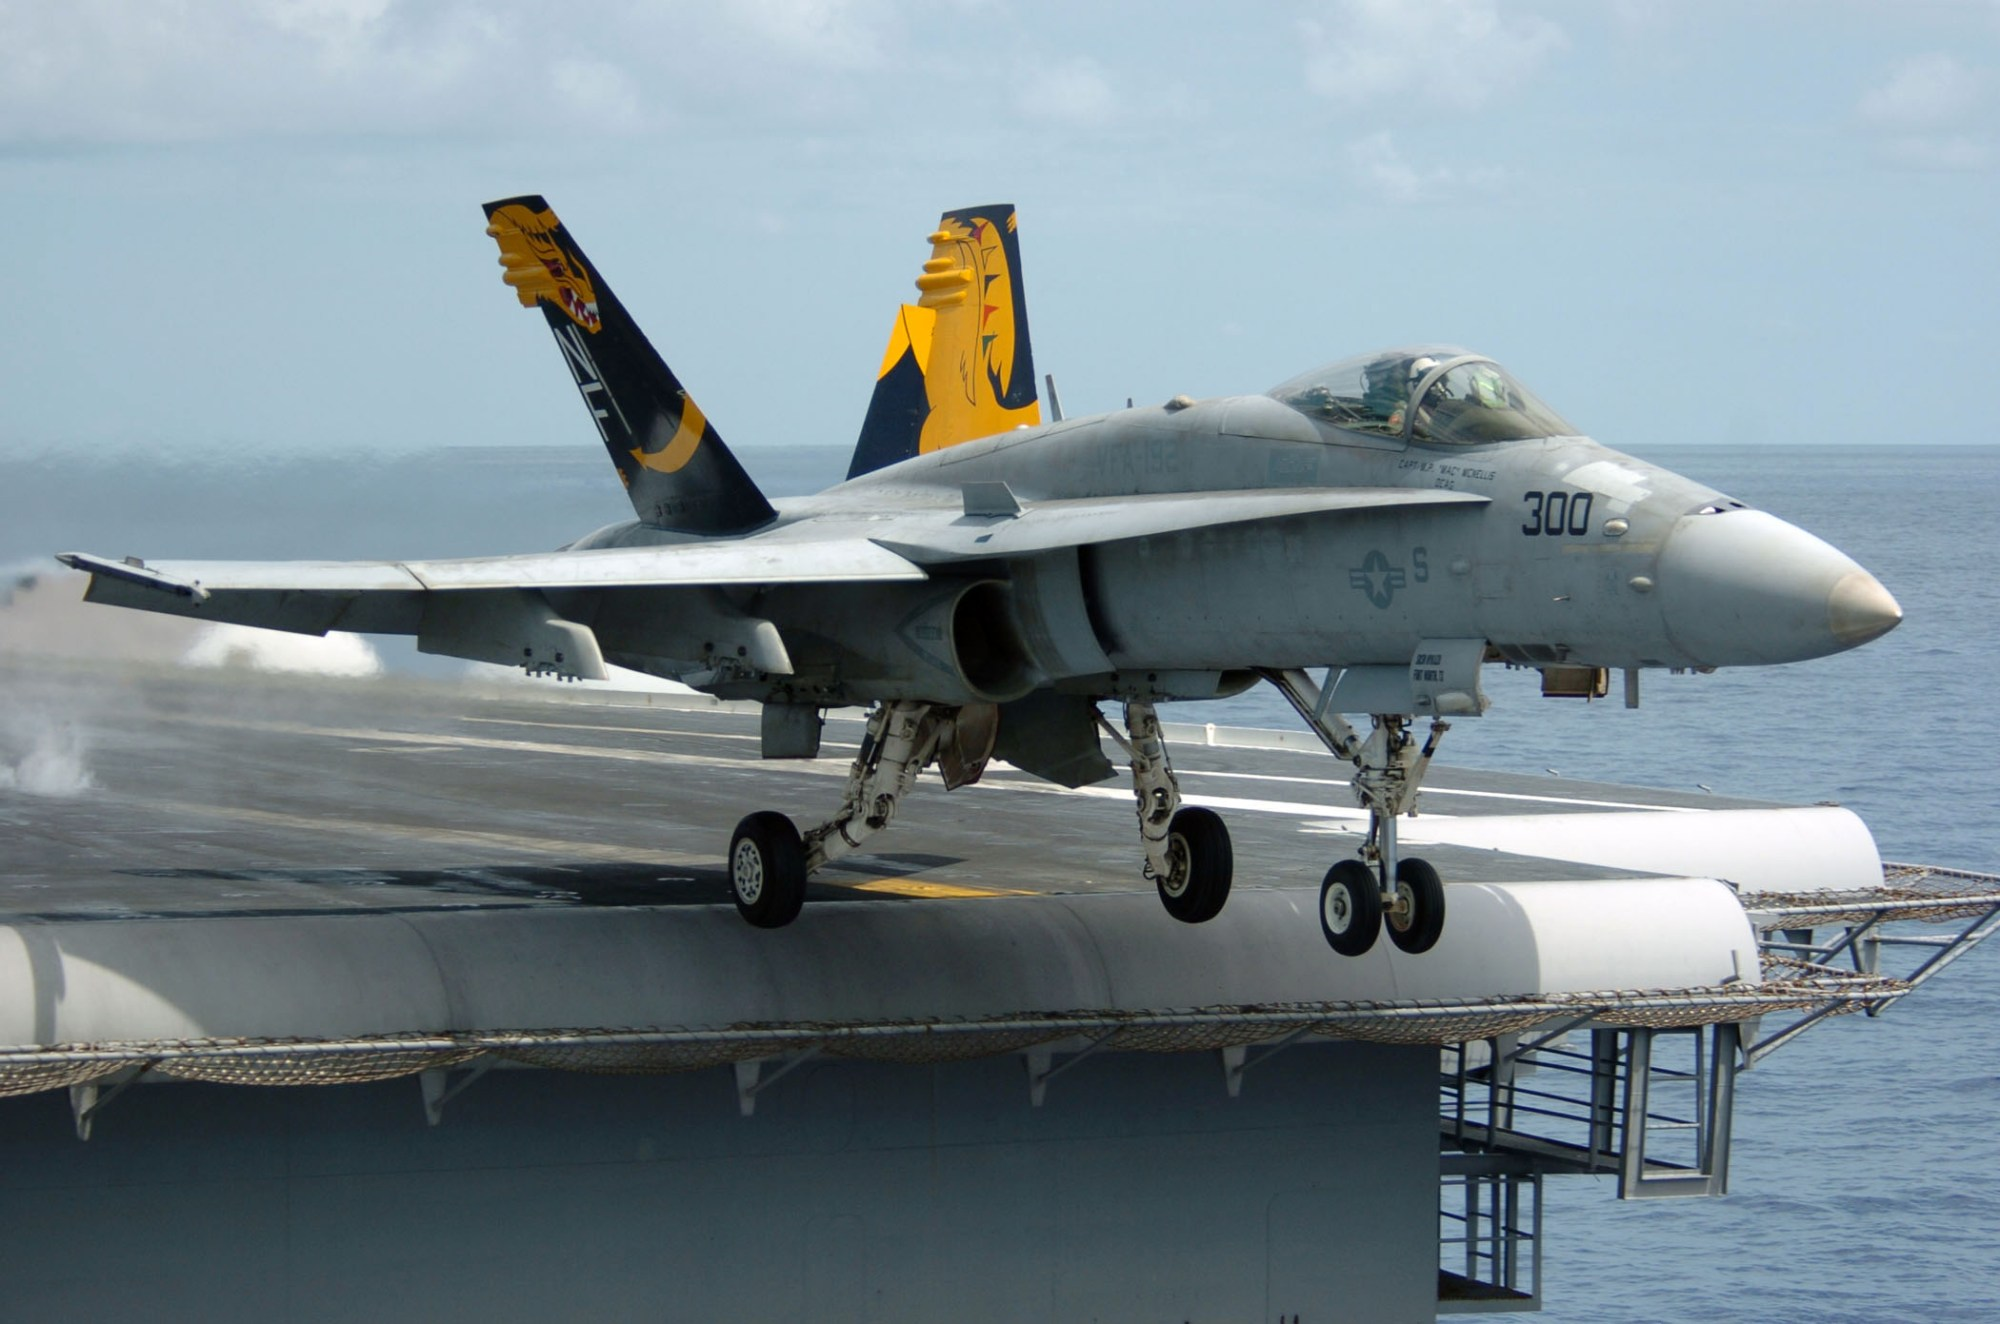 hight resolution of f a 18 hornet fighter departing aircraft carrier a gray overall aircraft